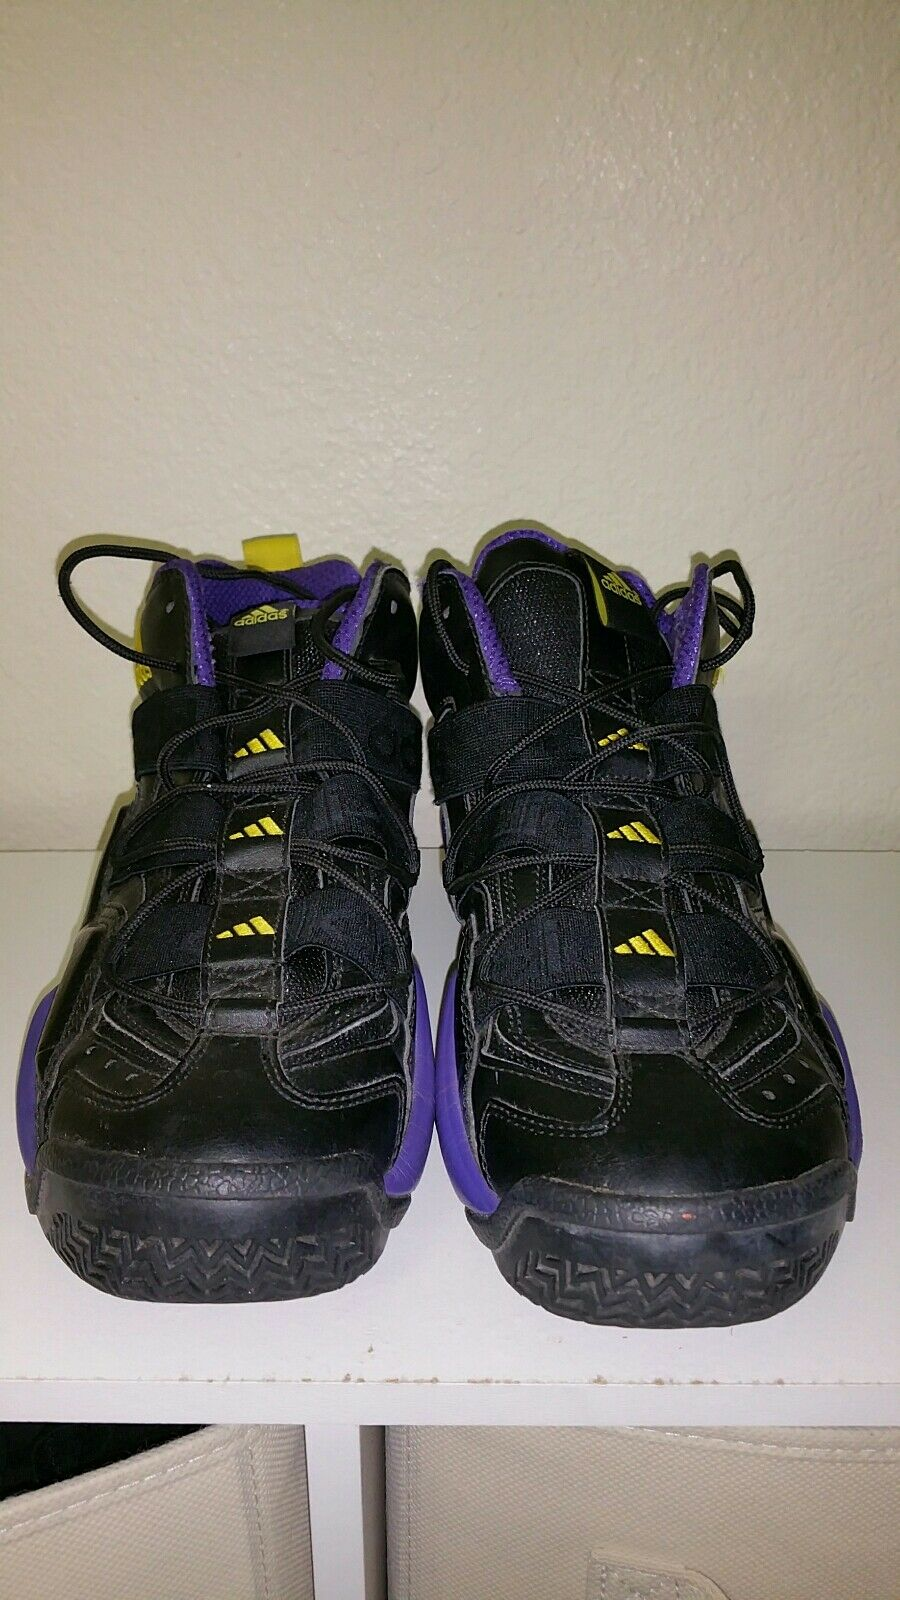 Adidas top ten 2000 black yellow purple Lakers basketball shoes sneakers G56095